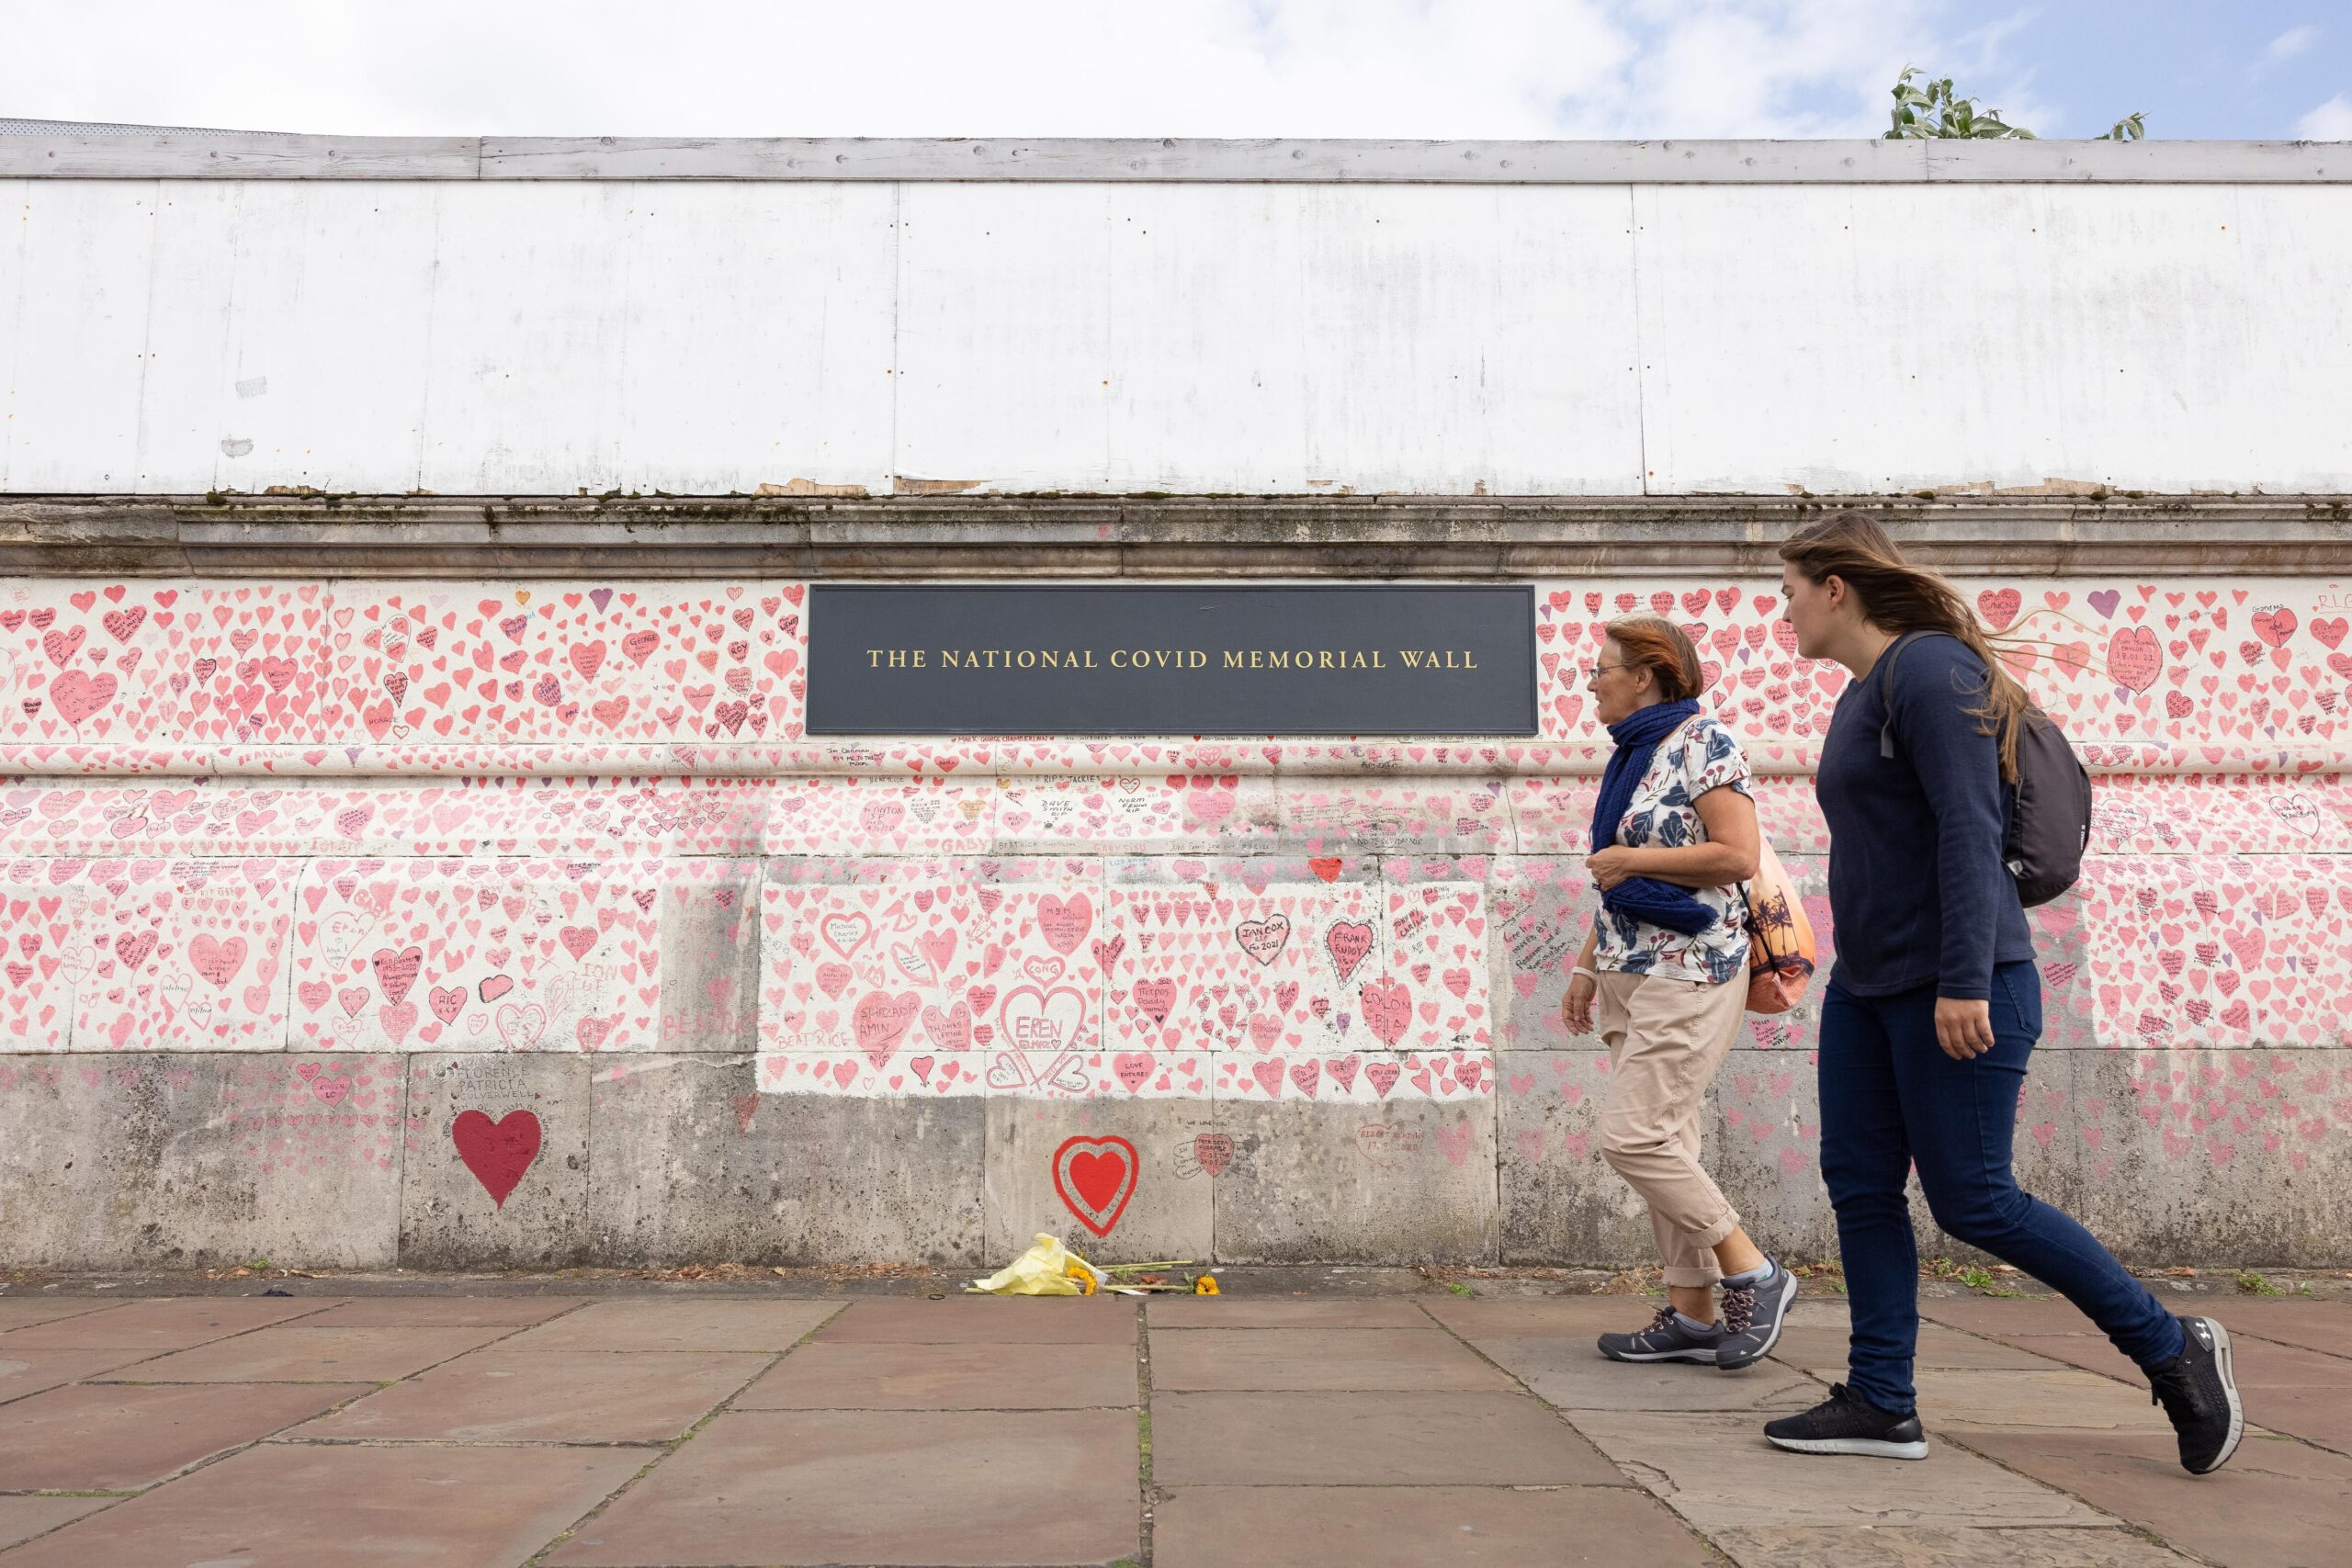 <i>Leon Neal/Getty Images</i><br/>A London memorial to people who have died from Covid-19 in the UK is seen.